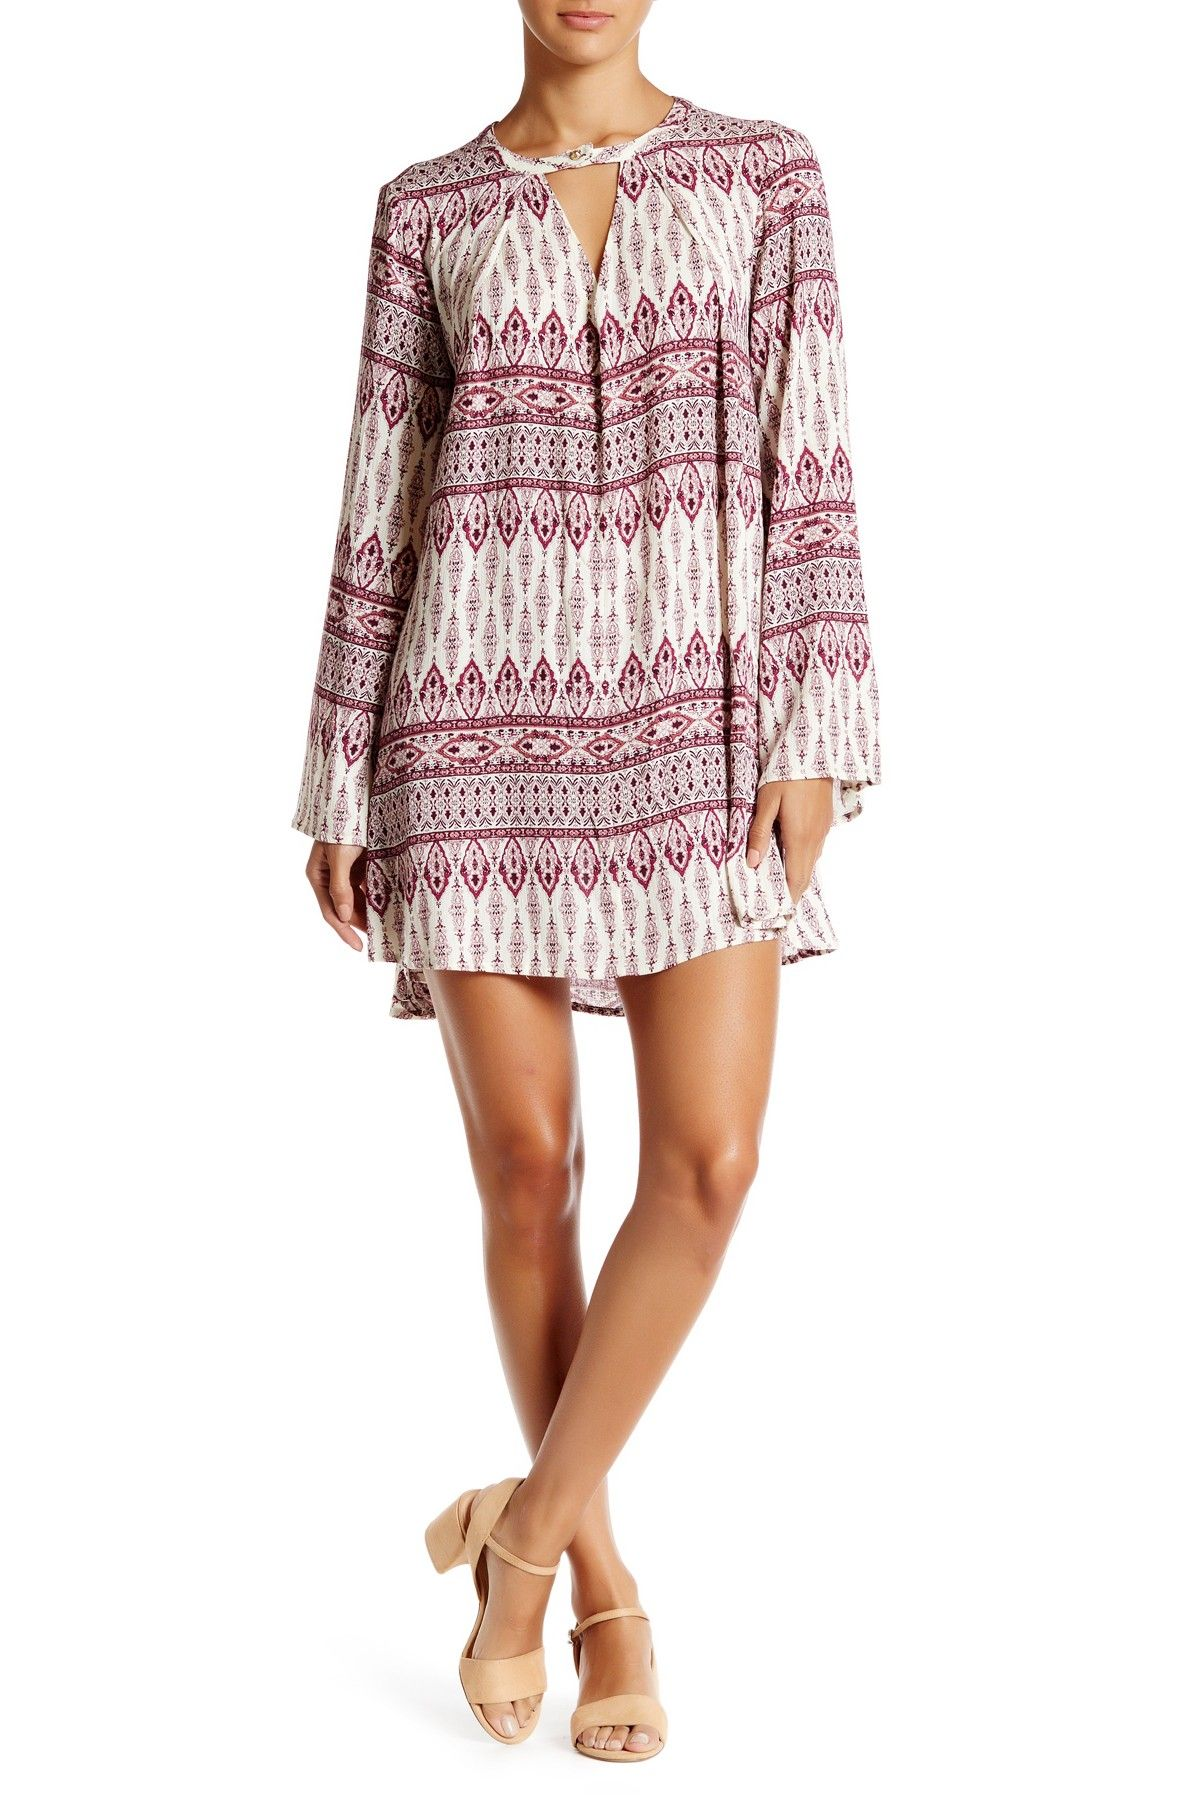 472f0aaf5 En Creme - Printed Bell Sleeve Tunic Dress at Nordstrom Rack. Free Shipping  on orders over  100.